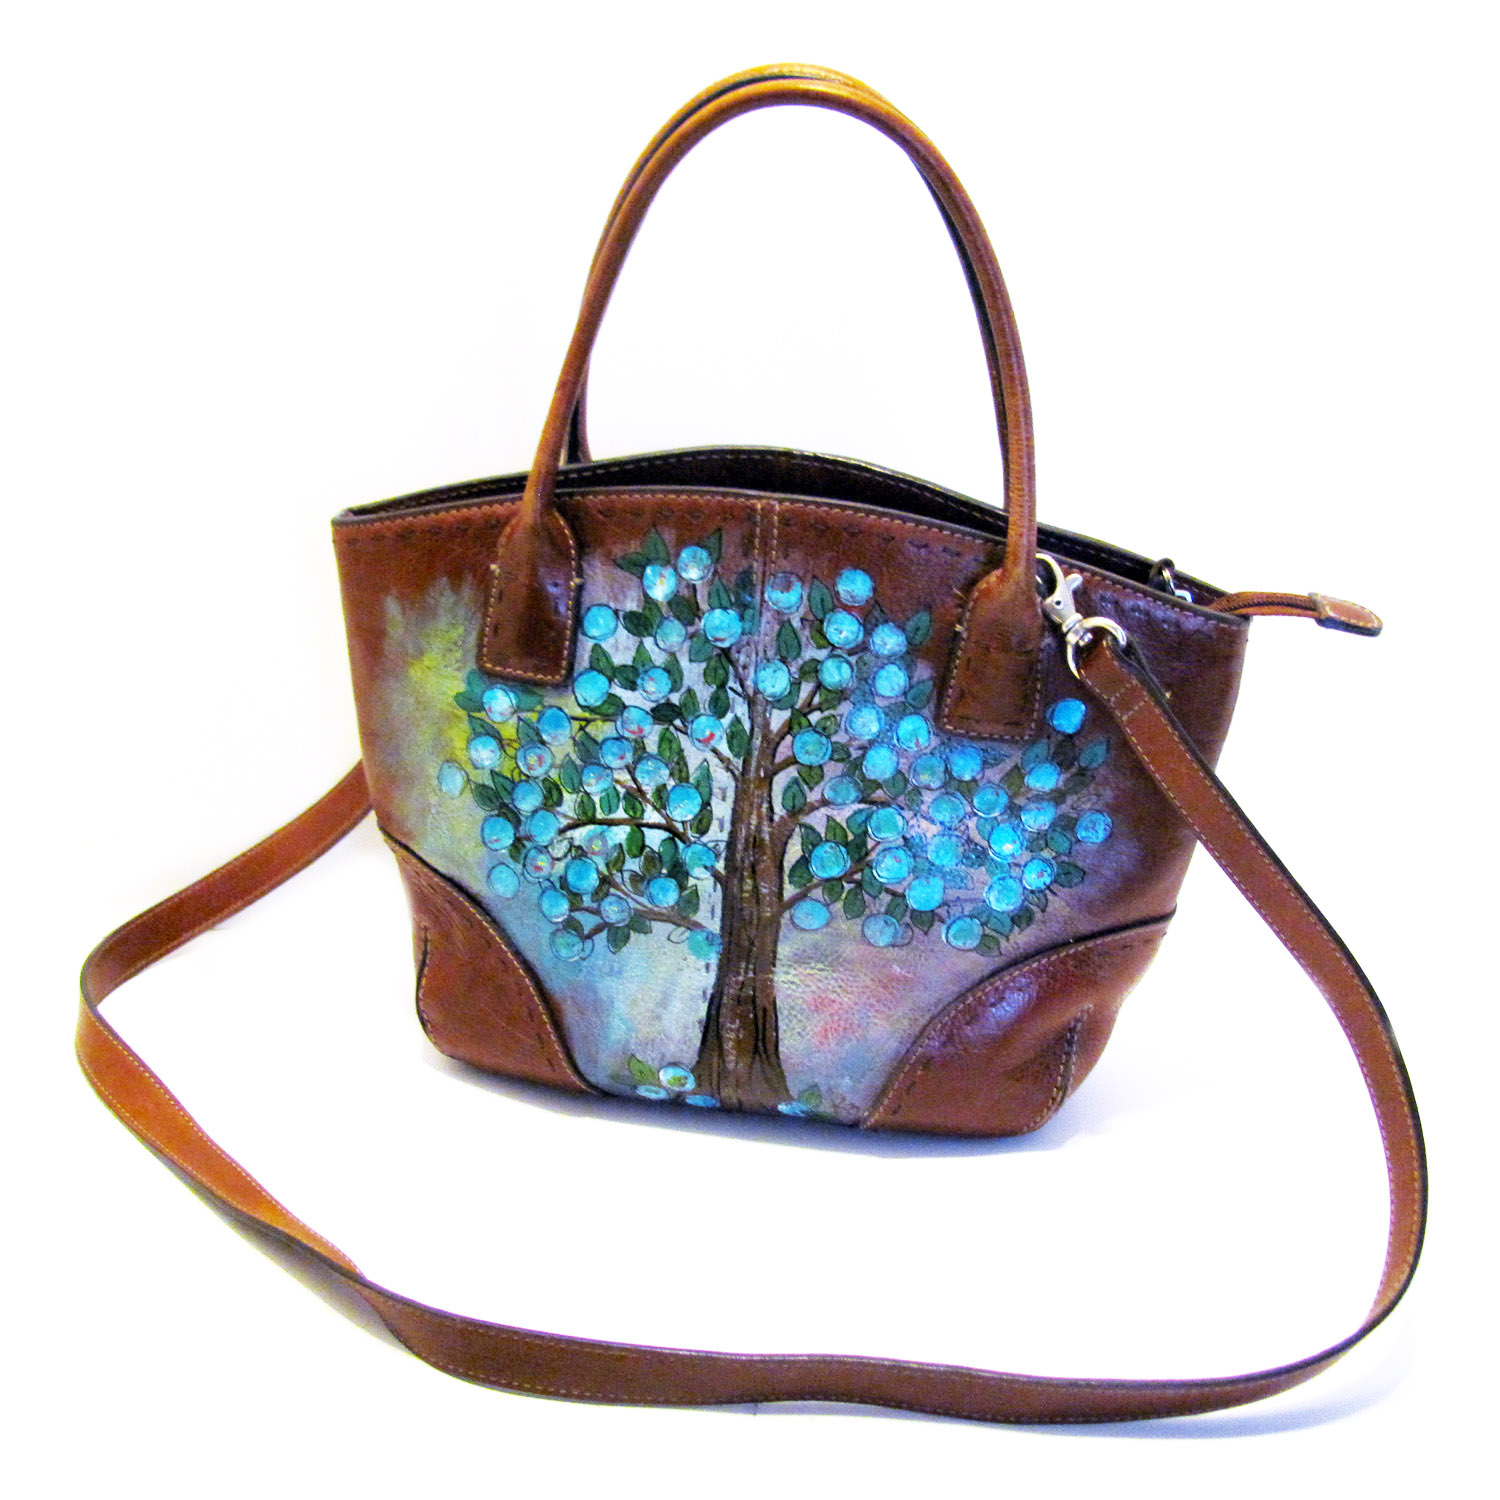 How To Acrylic Paint In Purse